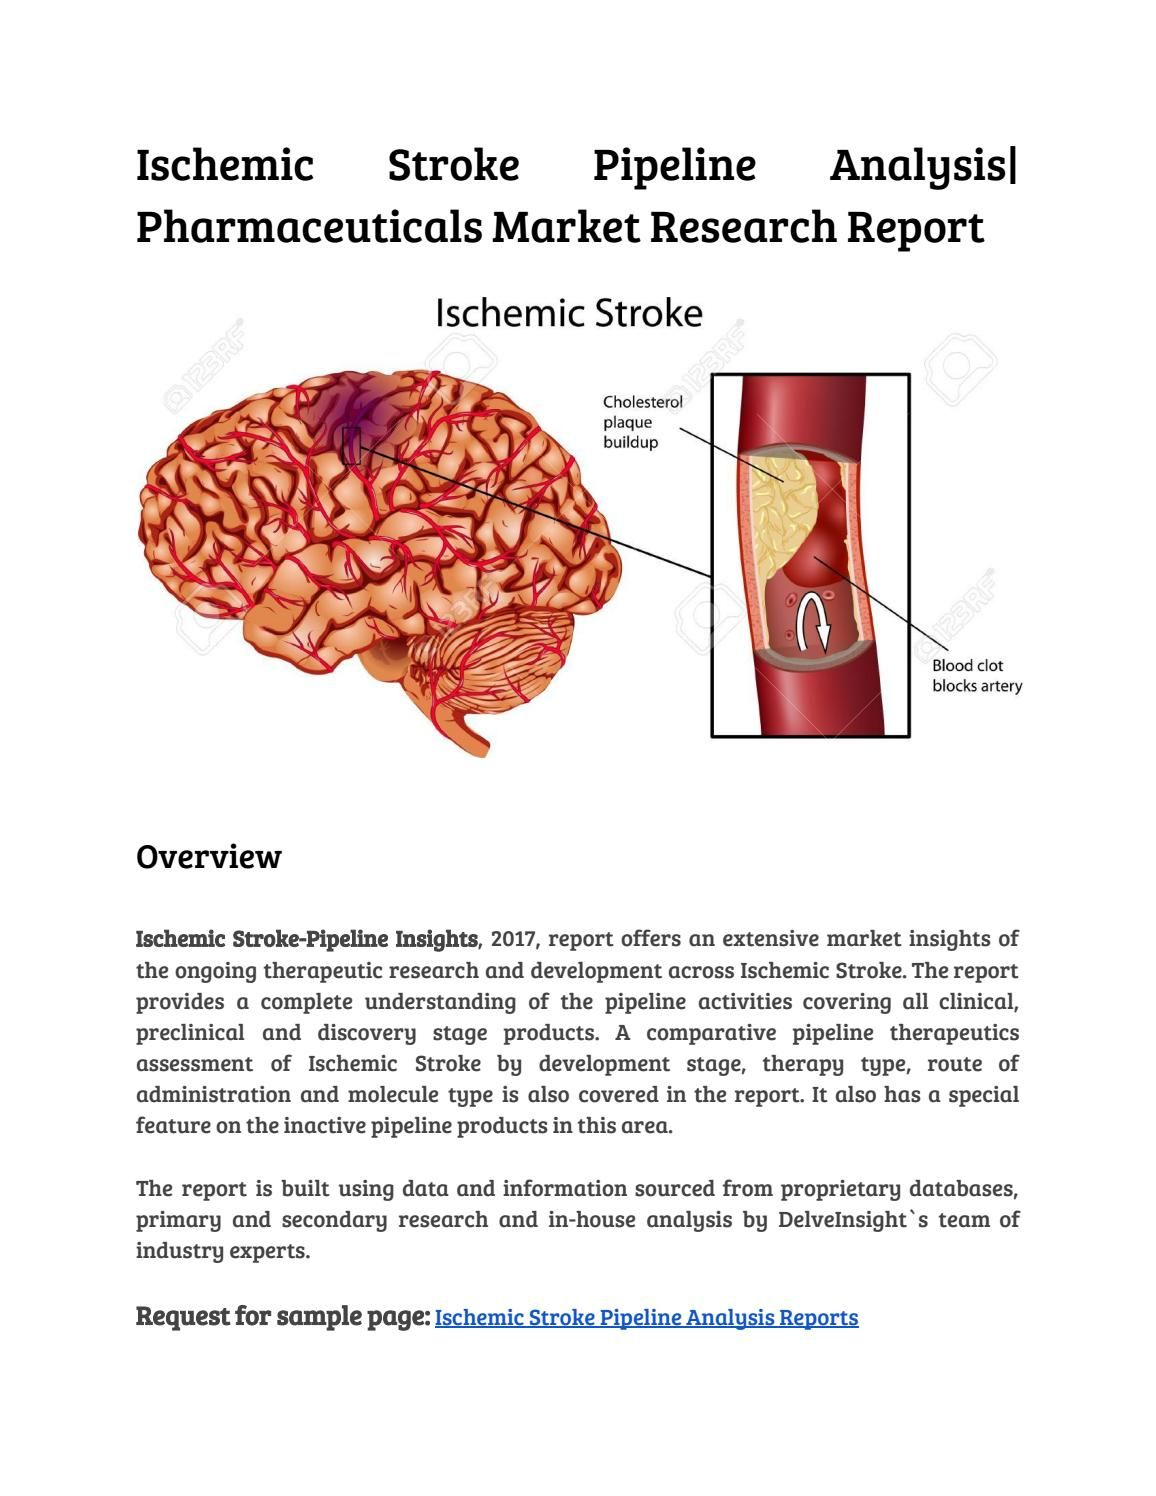 The Myanmar Pharmaceuticals Market Research Report Studies The